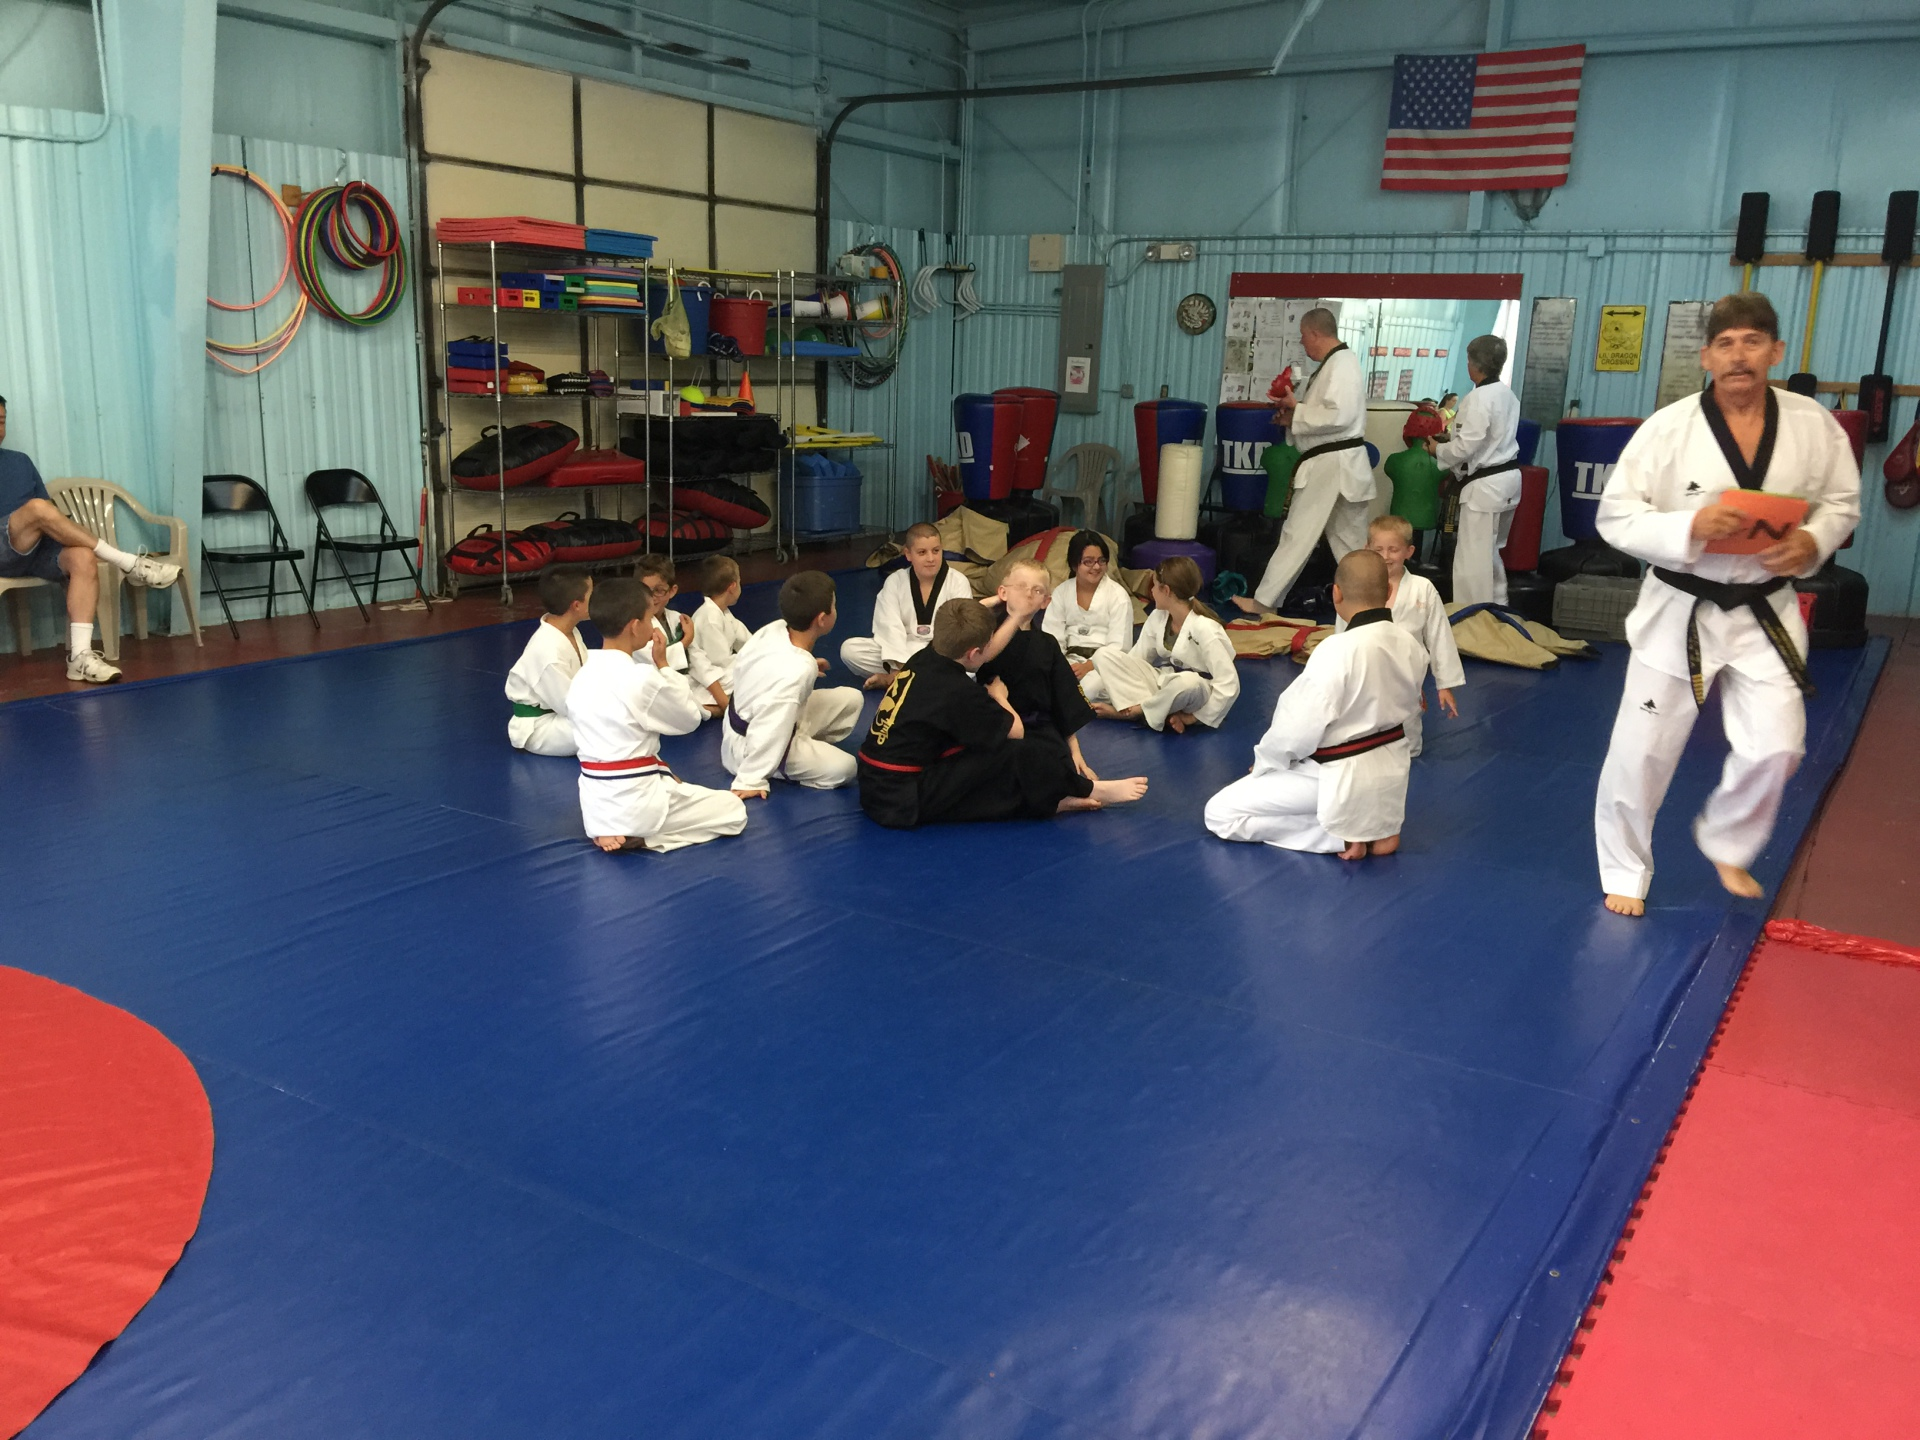 Grand Master Beaven getting everyone in place